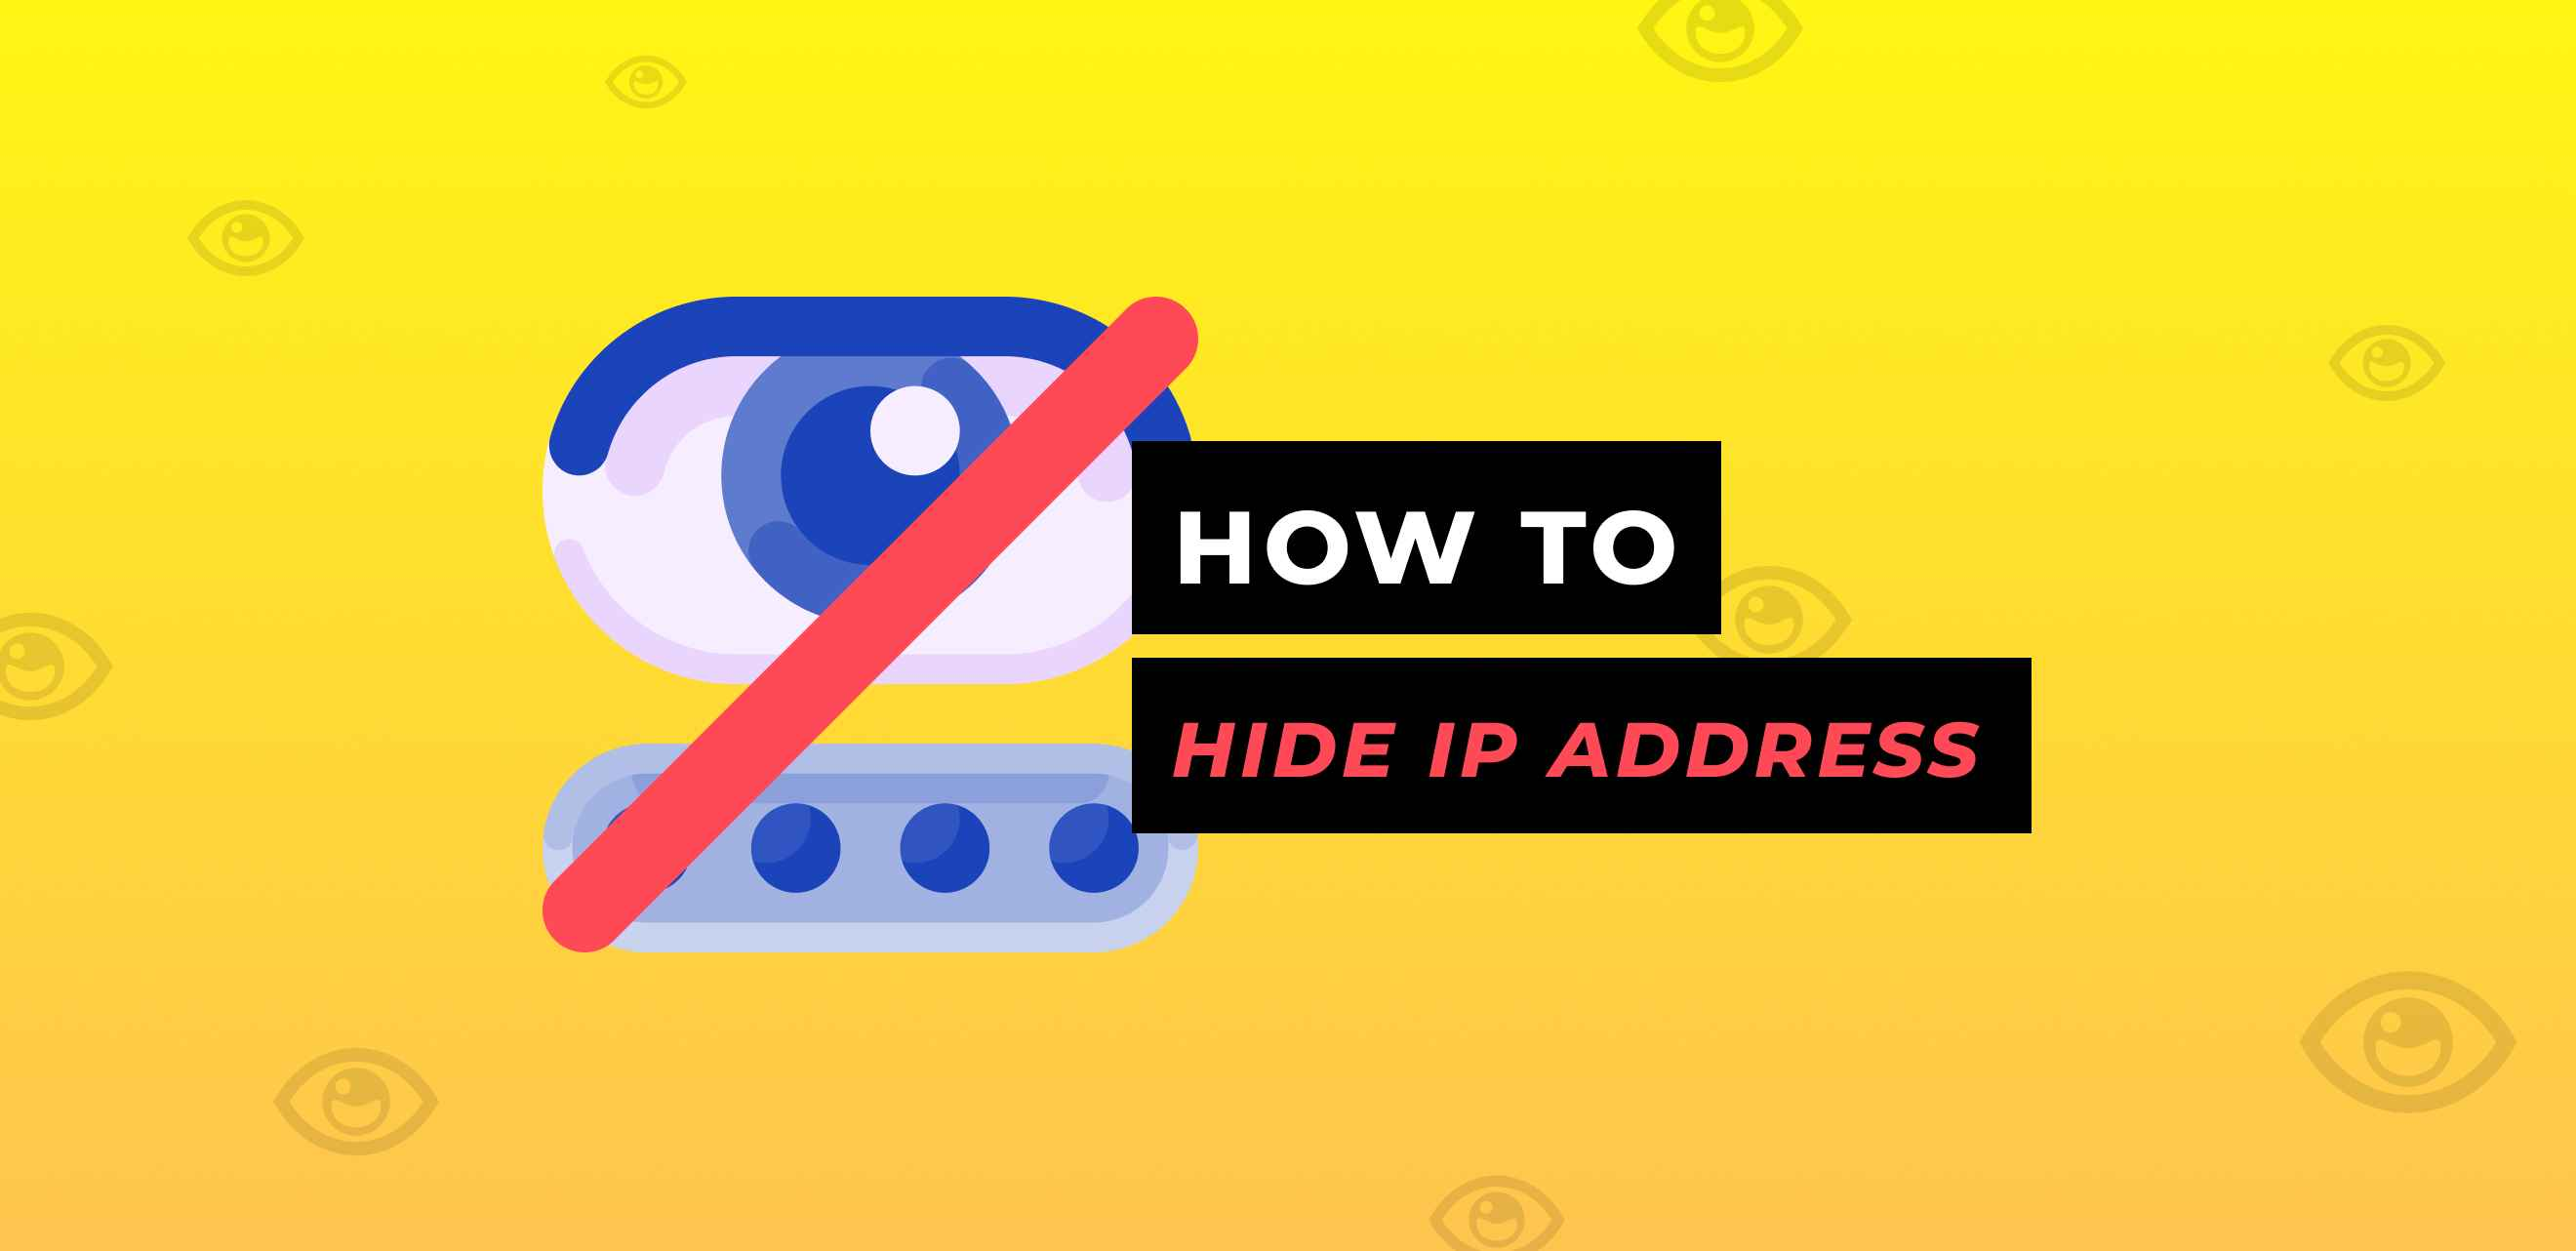 4 Easy Ways to Hide Your IP Address